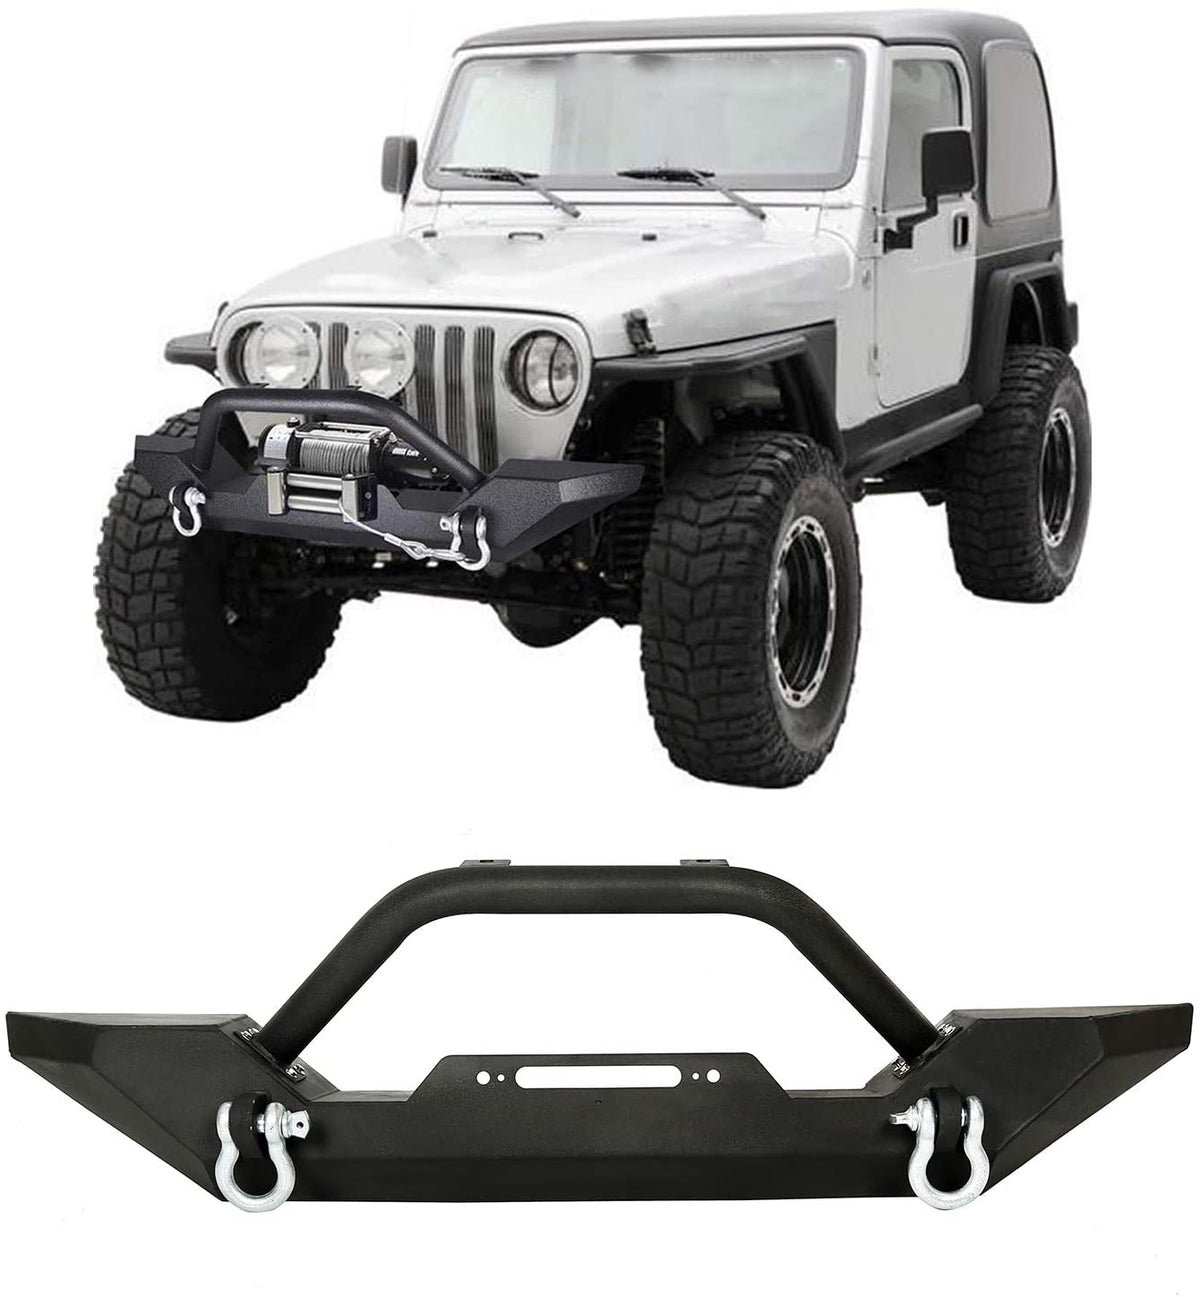 Jeep Wrangler TJ 1997 - 2006 Armor Front Bumpers